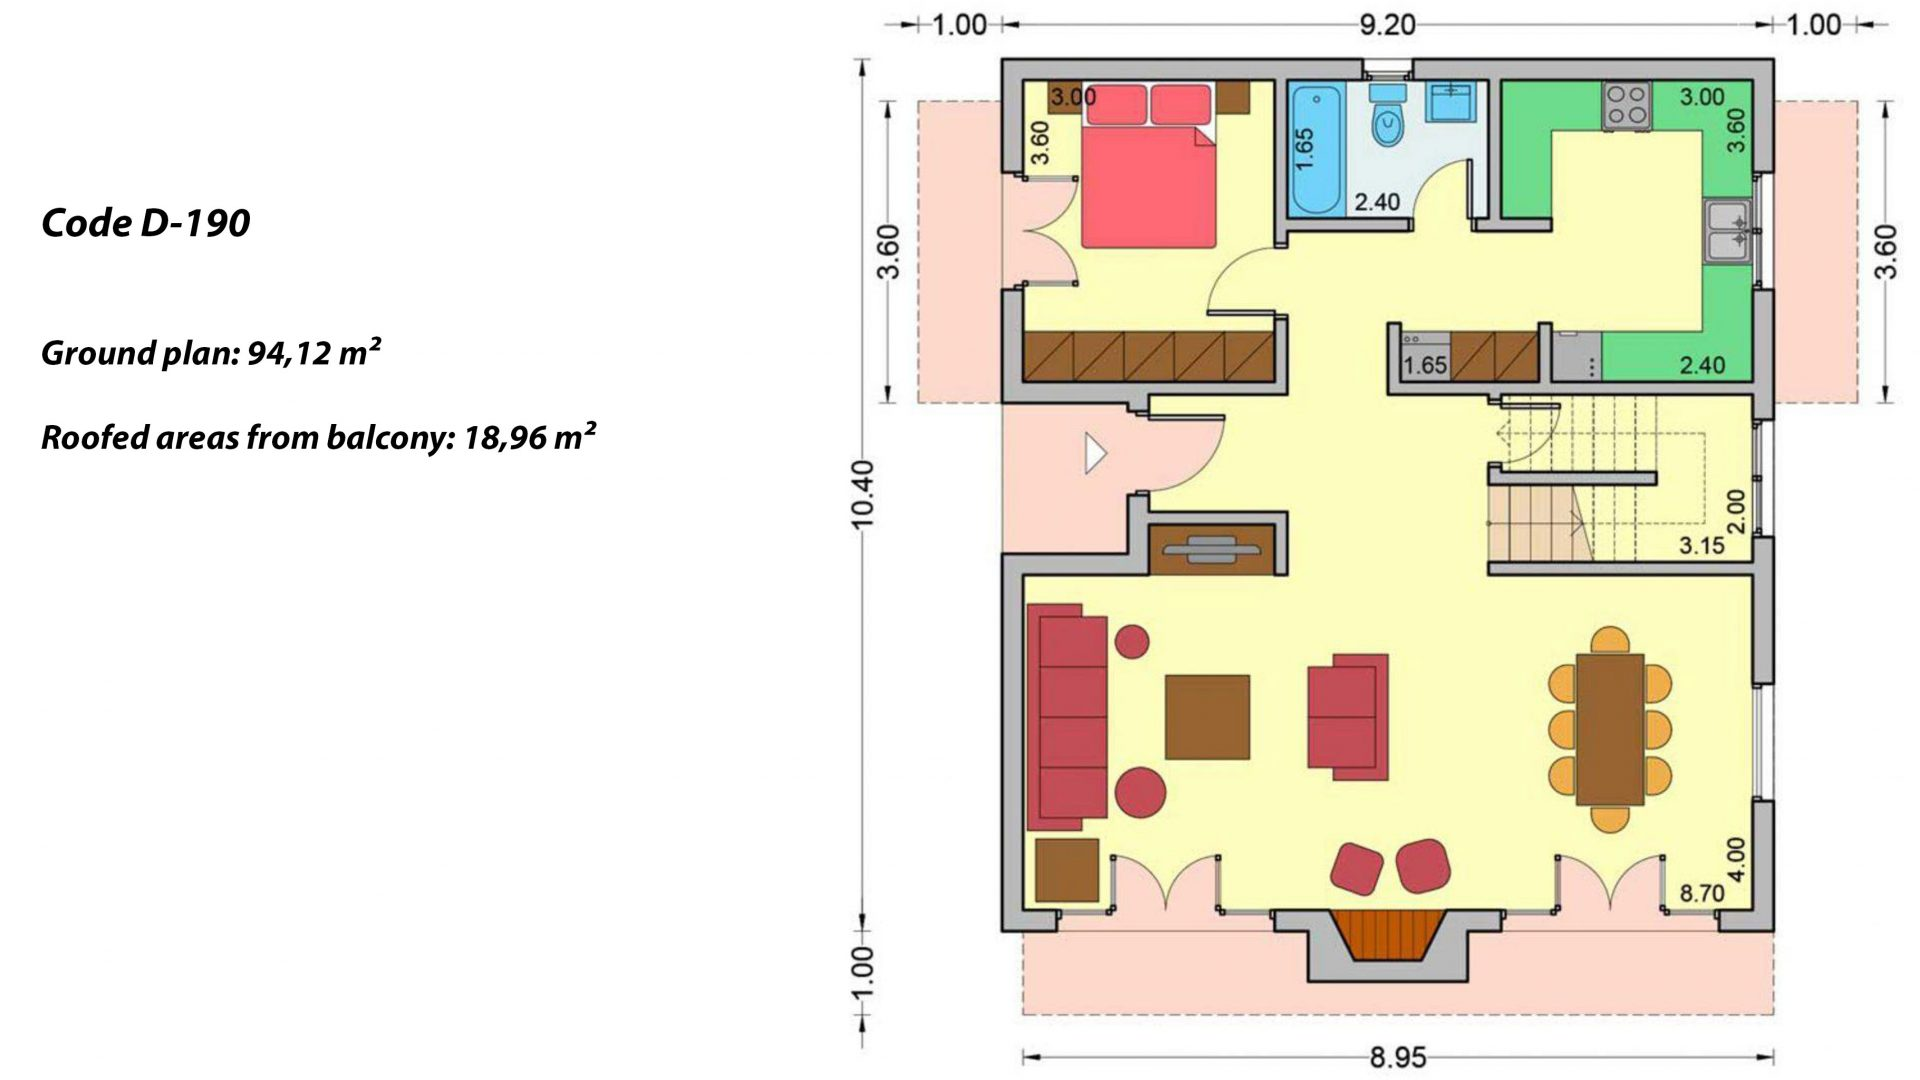 2-story house D-190, total surface of 190,94 m² ,roofed areas 25.02 m²,balconies 18.96 m²